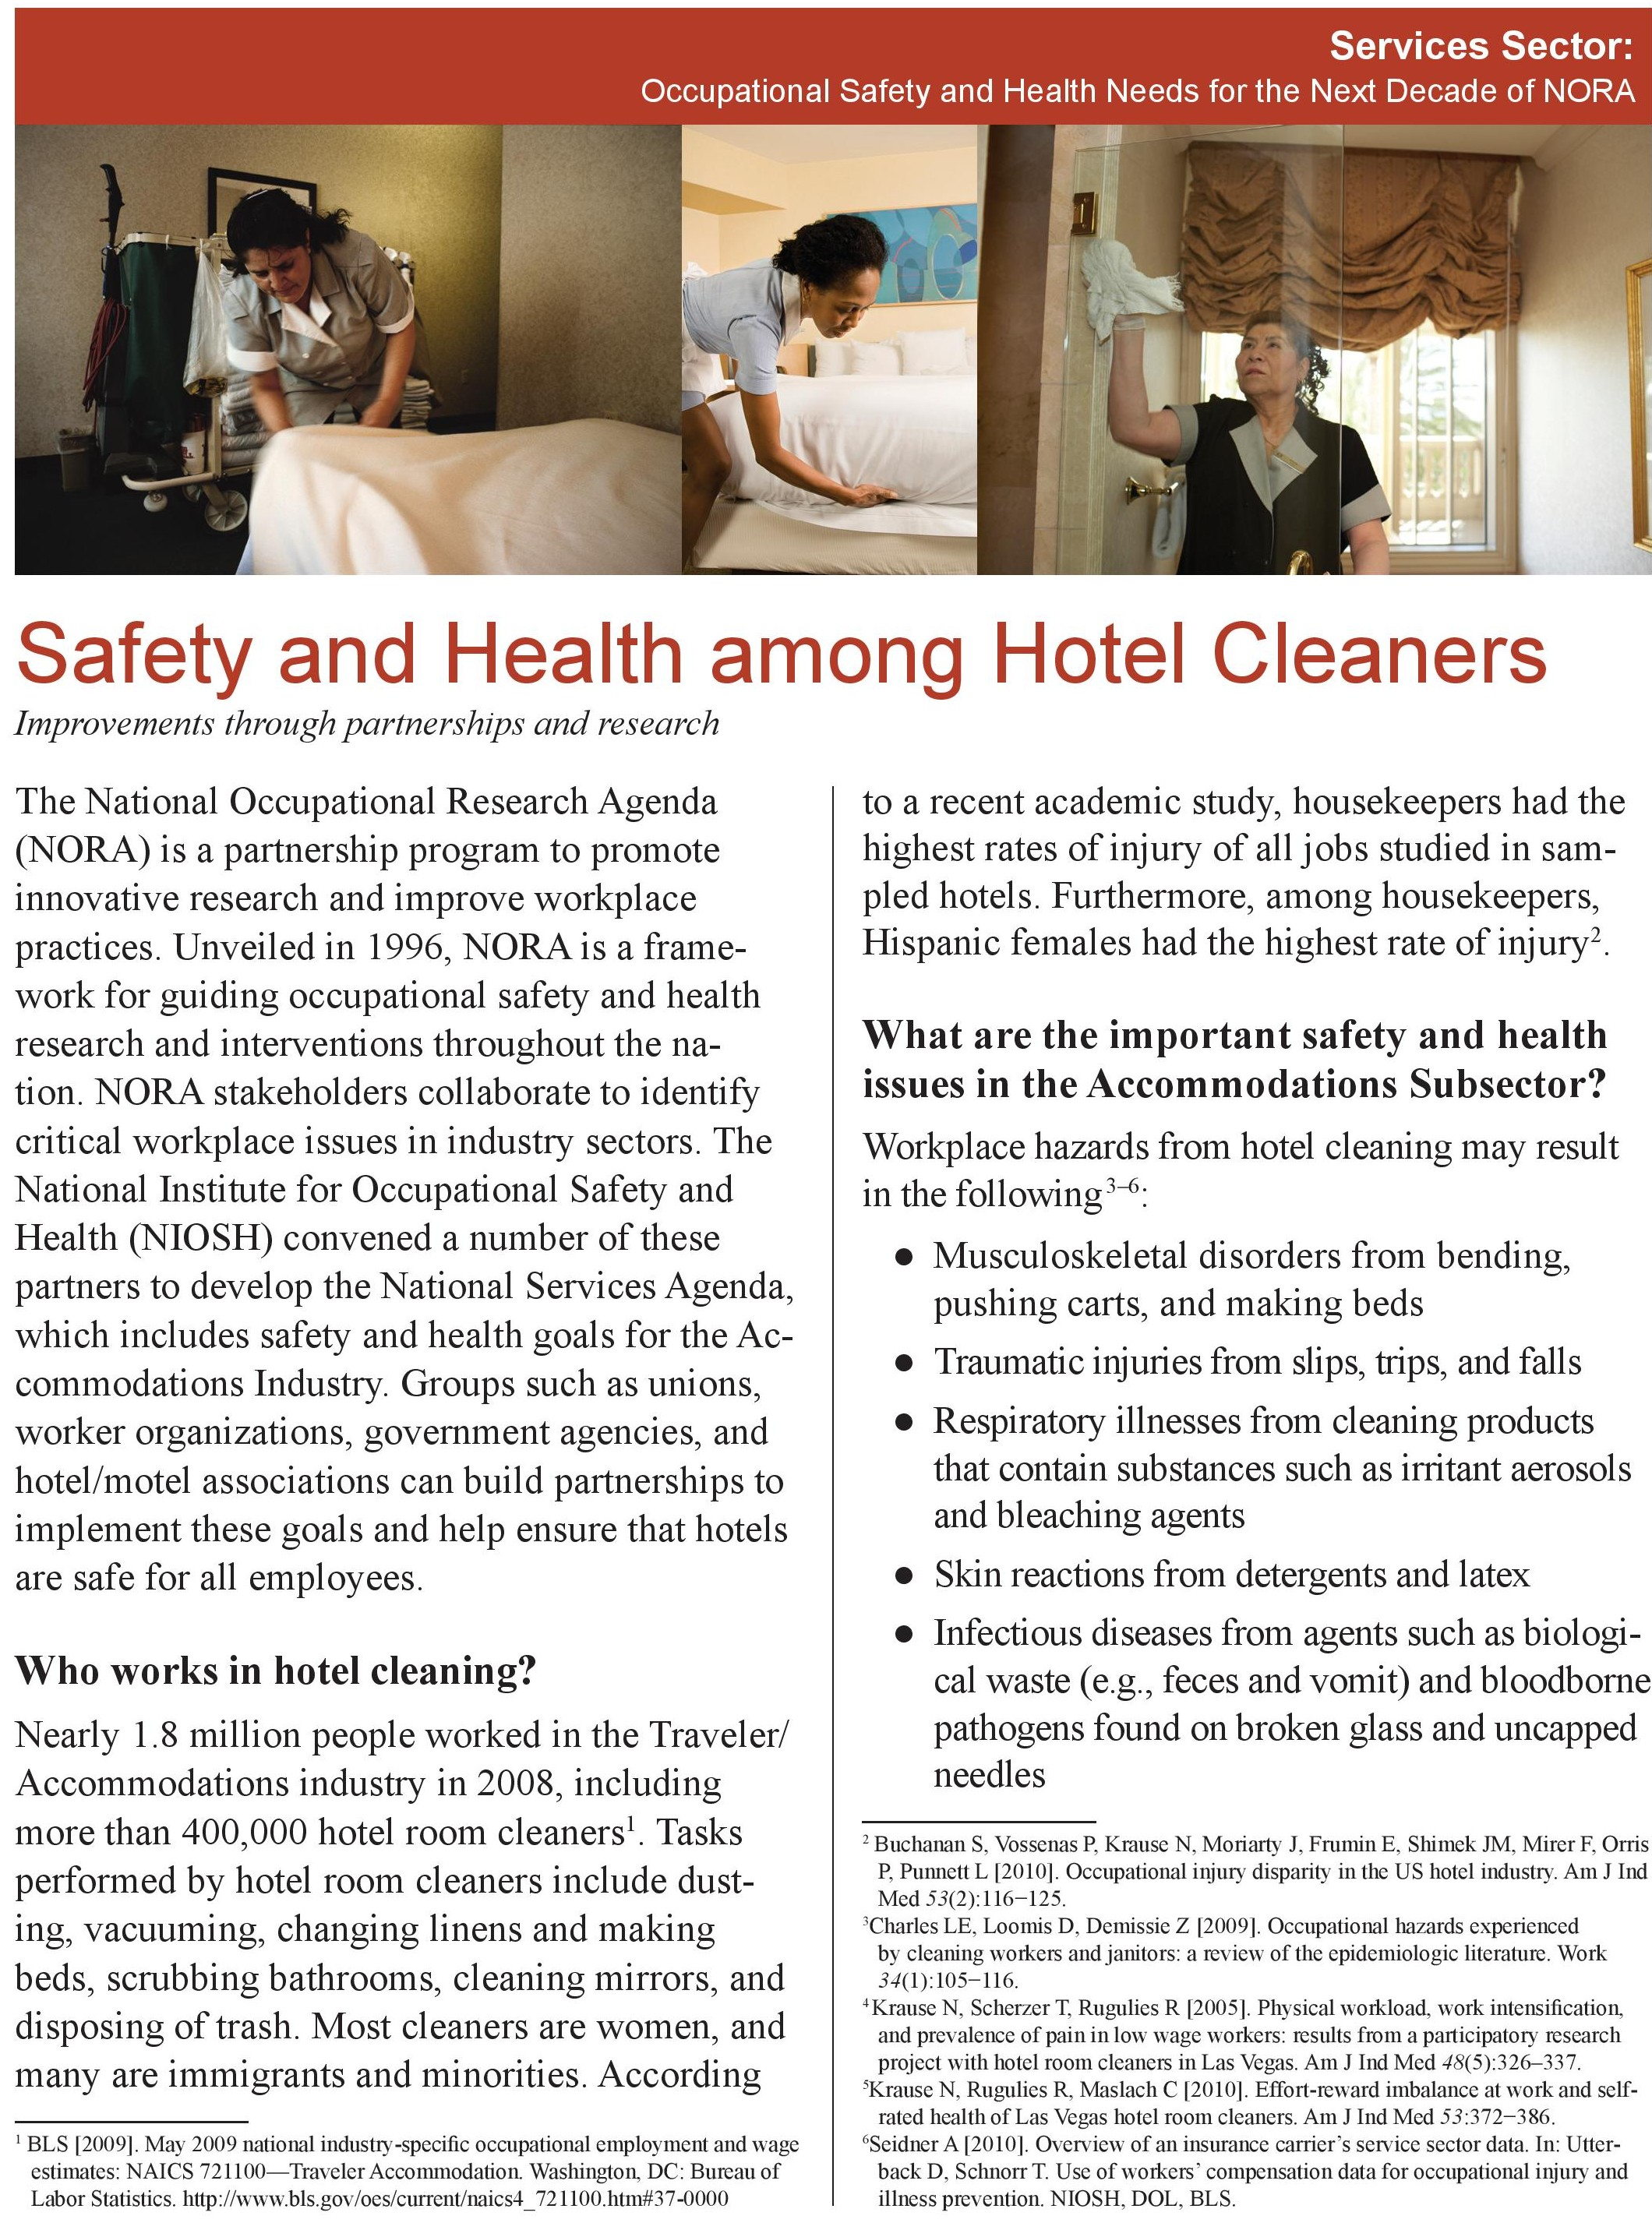 CDC Hotel Safety and Health Among Hotel Cleaners